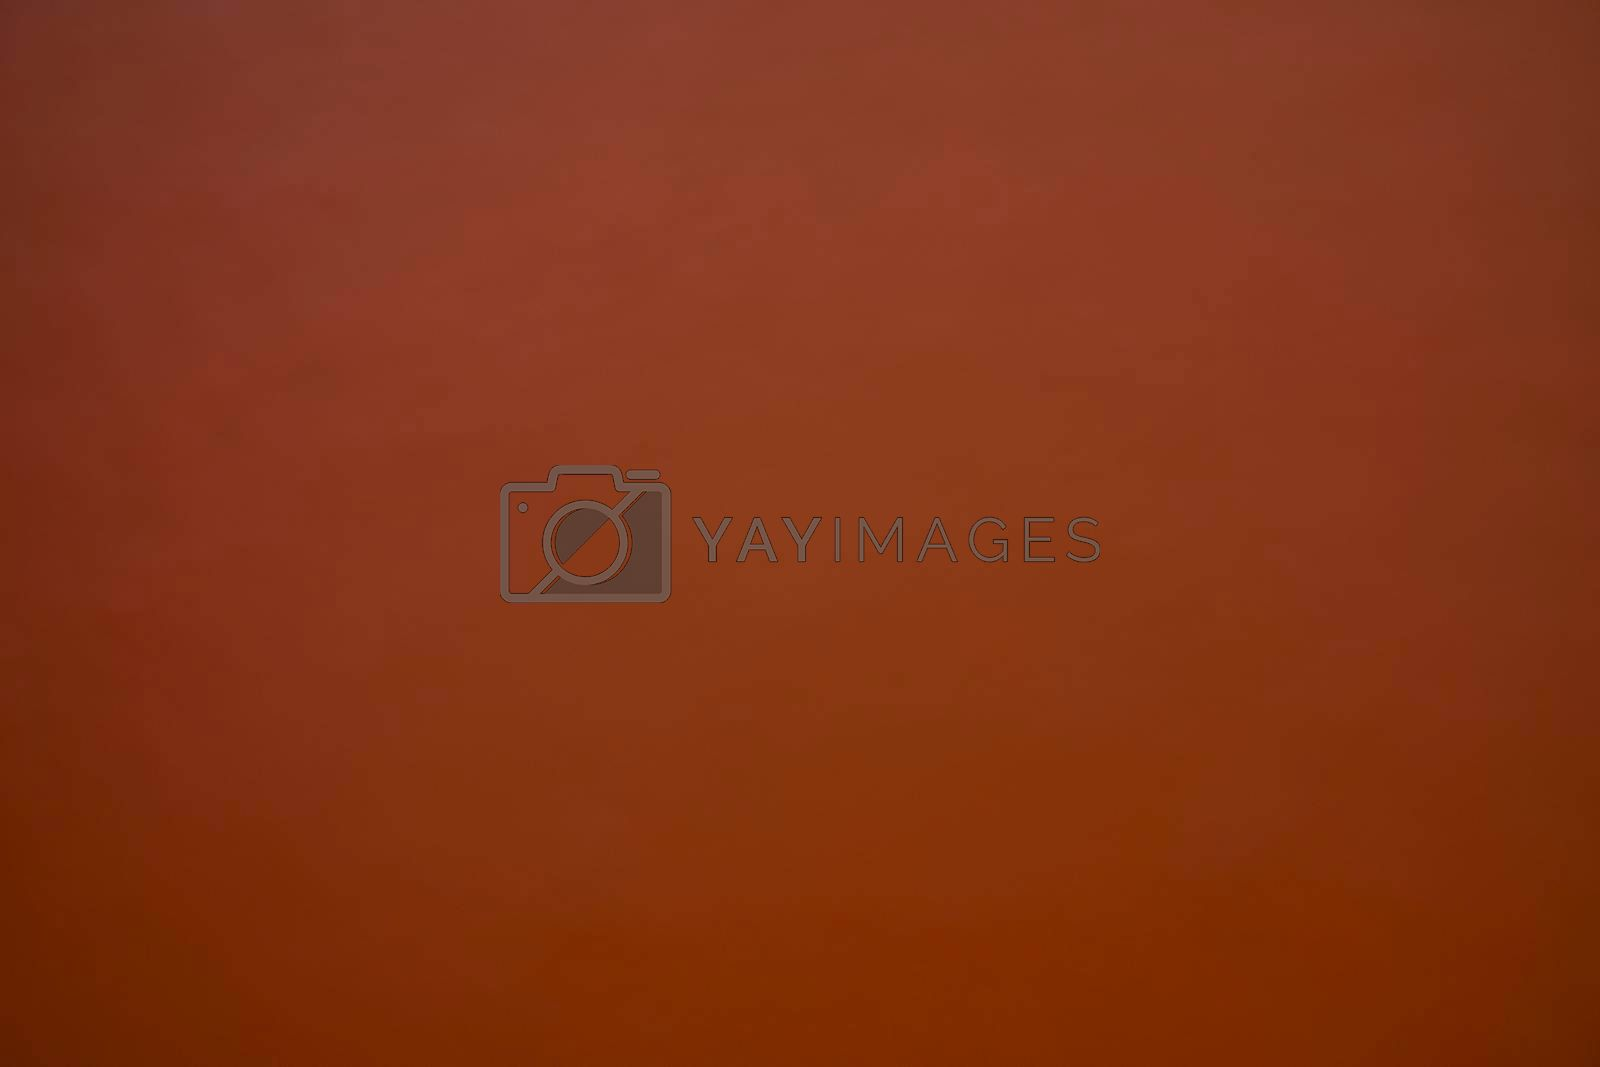 the color orange, associated with amusement, warmth, autumn and danger